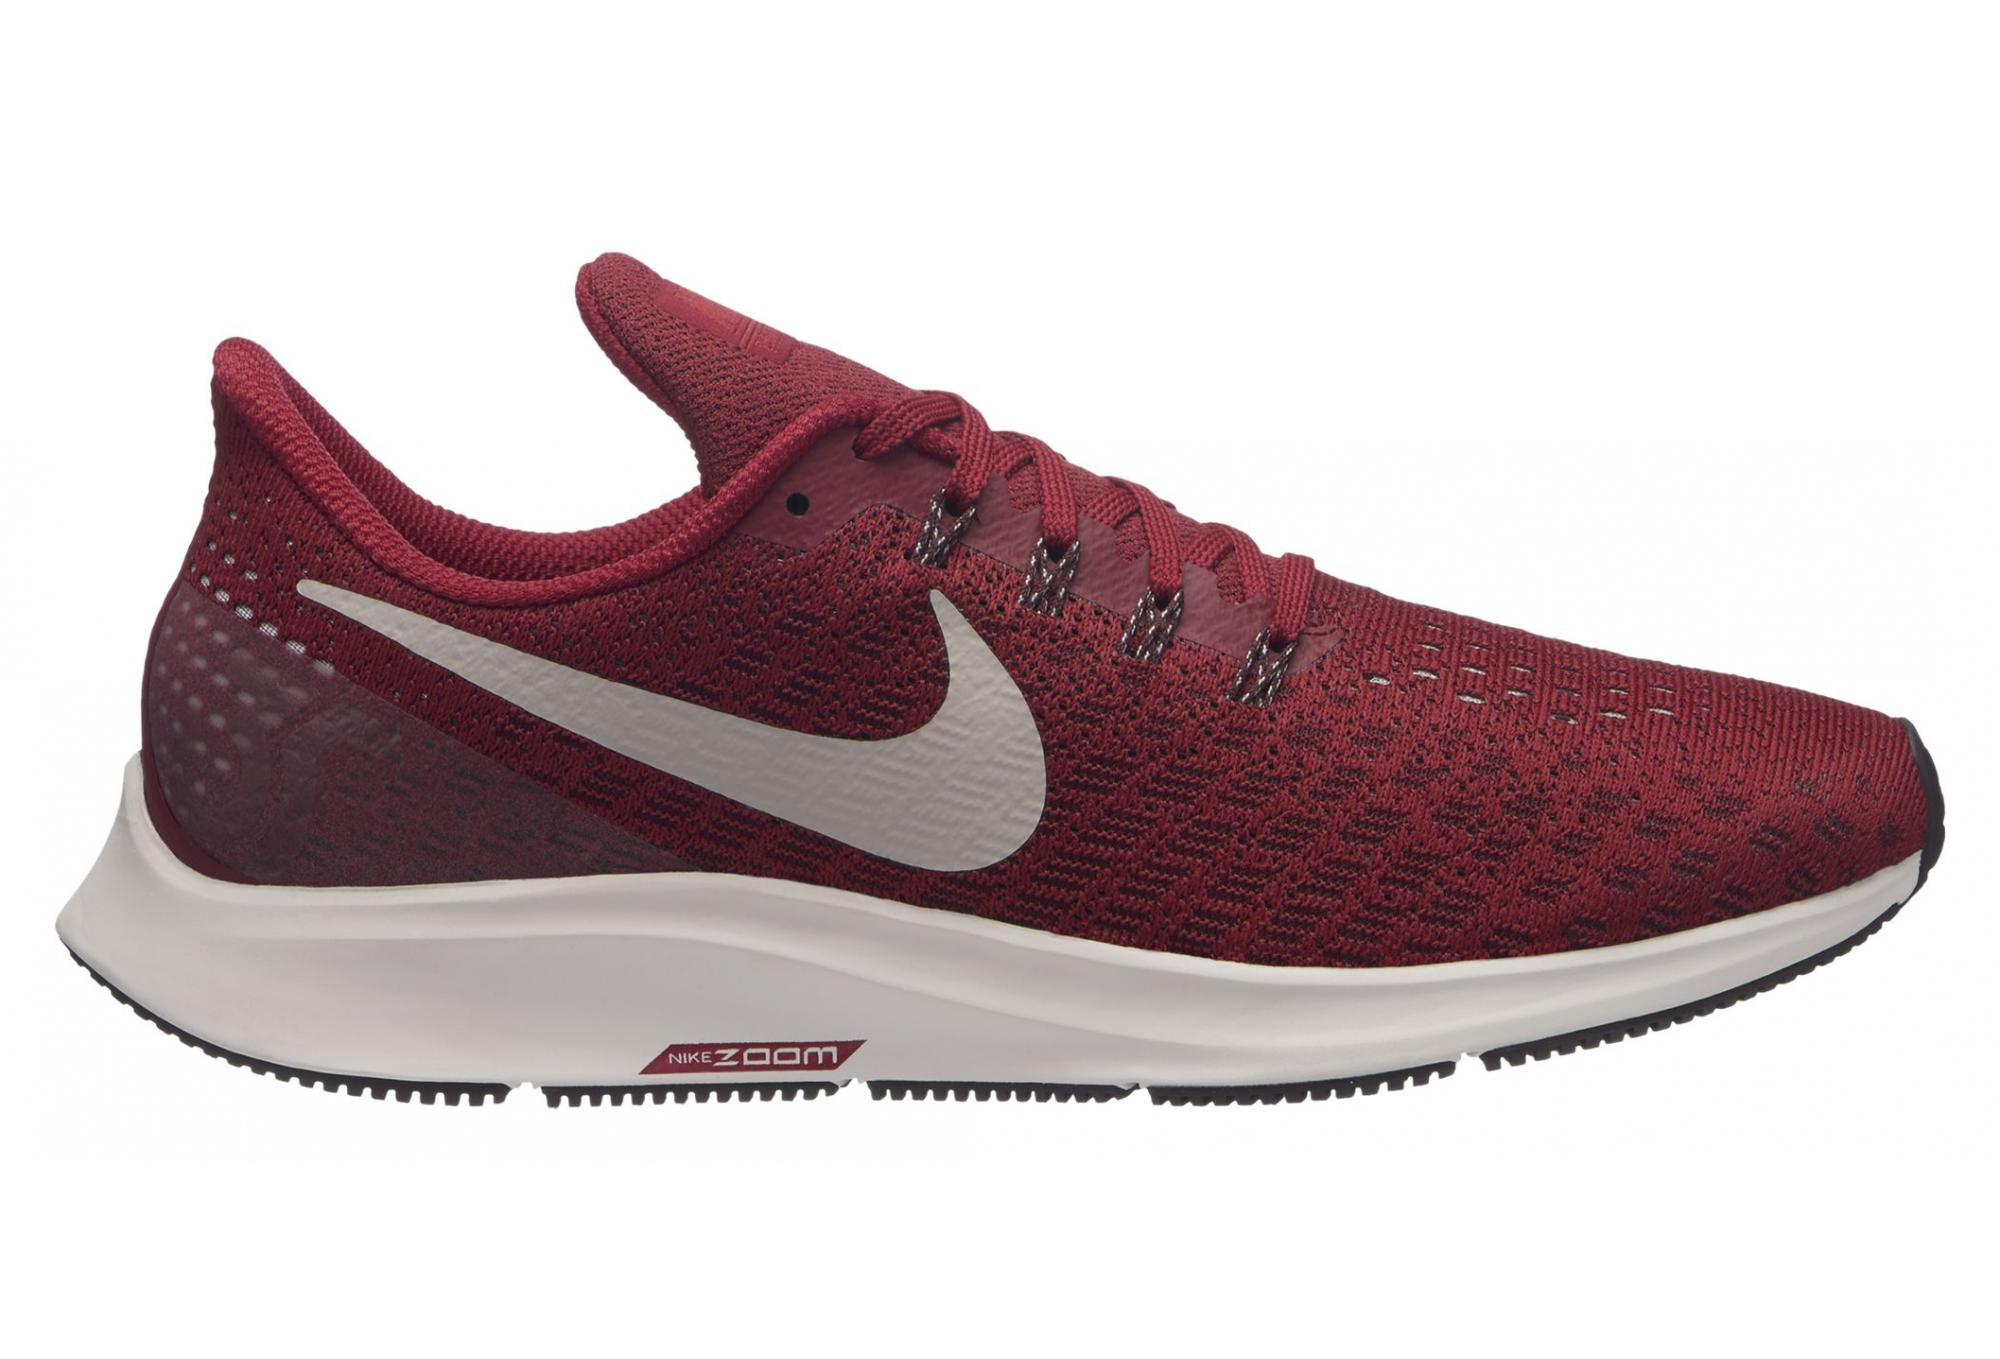 outlet store 098a4 4bed9 Chaussures de Running Femme Nike Air Zoom Pegasus 35 Rouge